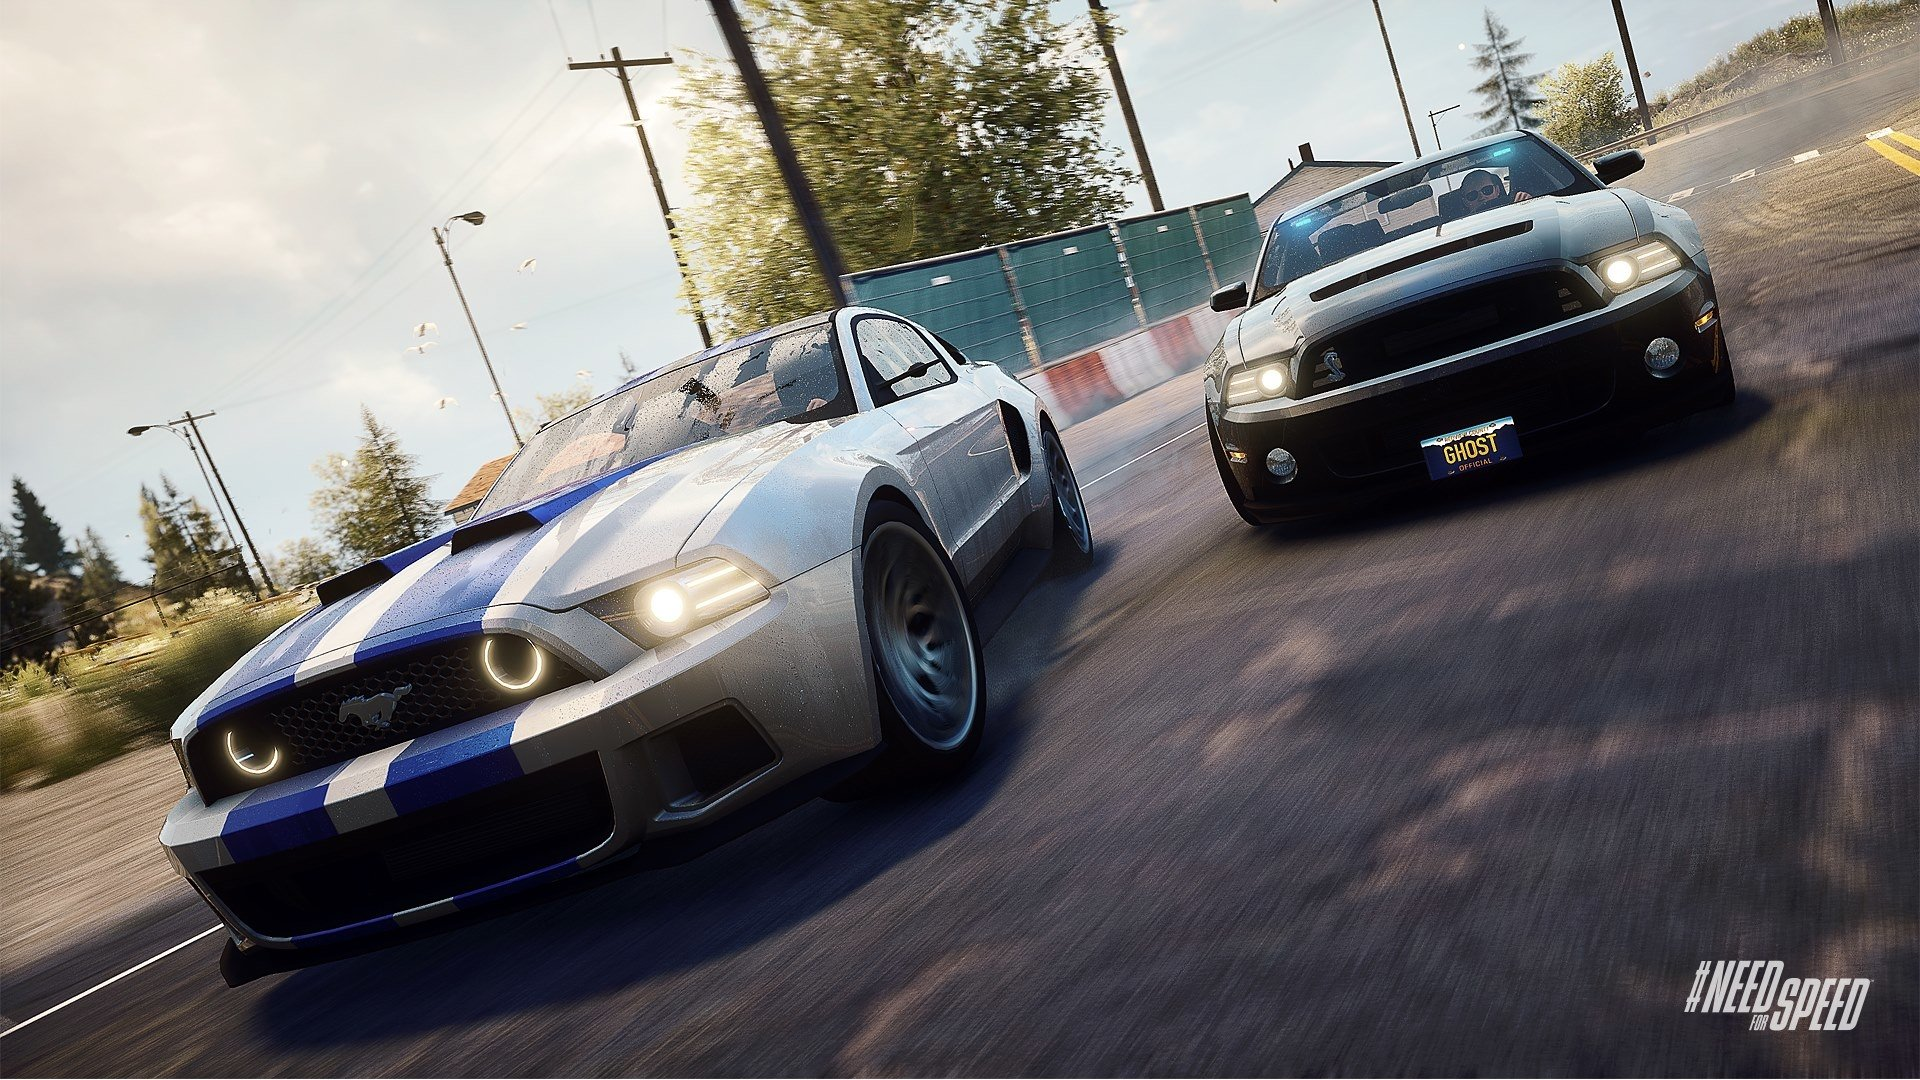 Need For Speed: Rivals HD Wallpaper | Background Image ...Nfs Rivals Wallpaper For Pc